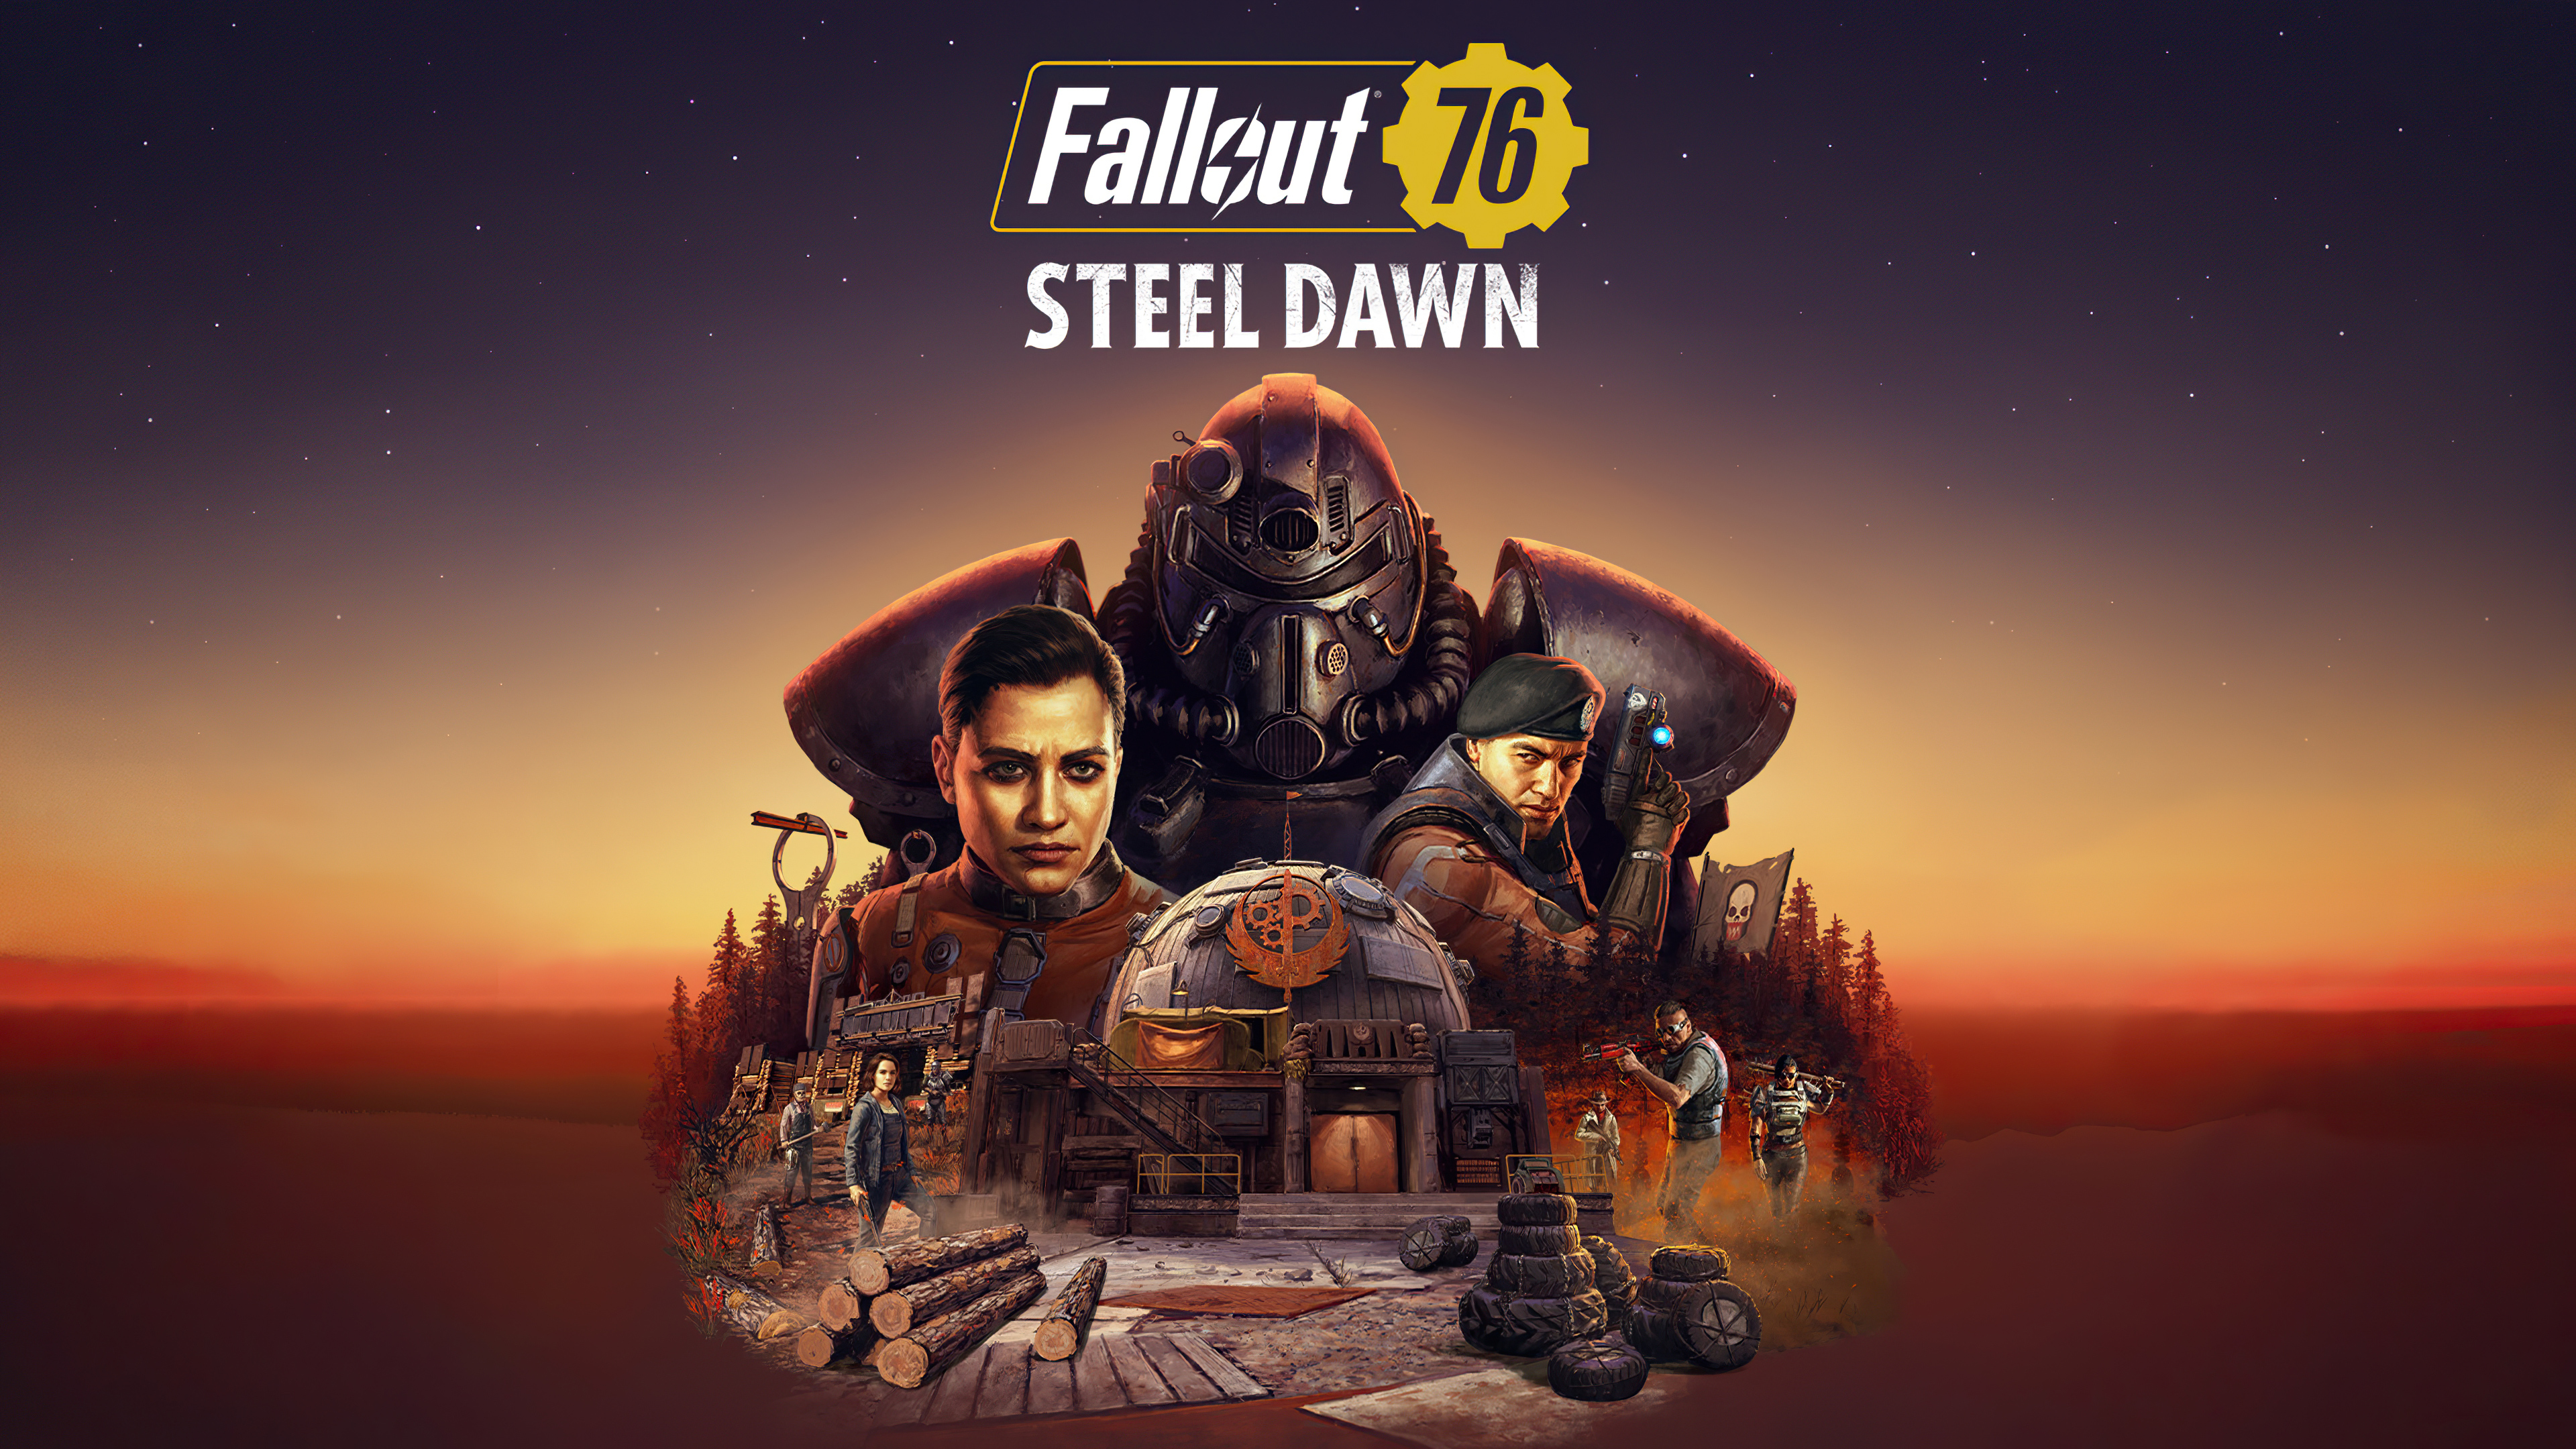 Fallout 76 Steel Dawn 4k Hd Games 4k Wallpapers Images Backgrounds Photos And Pictures